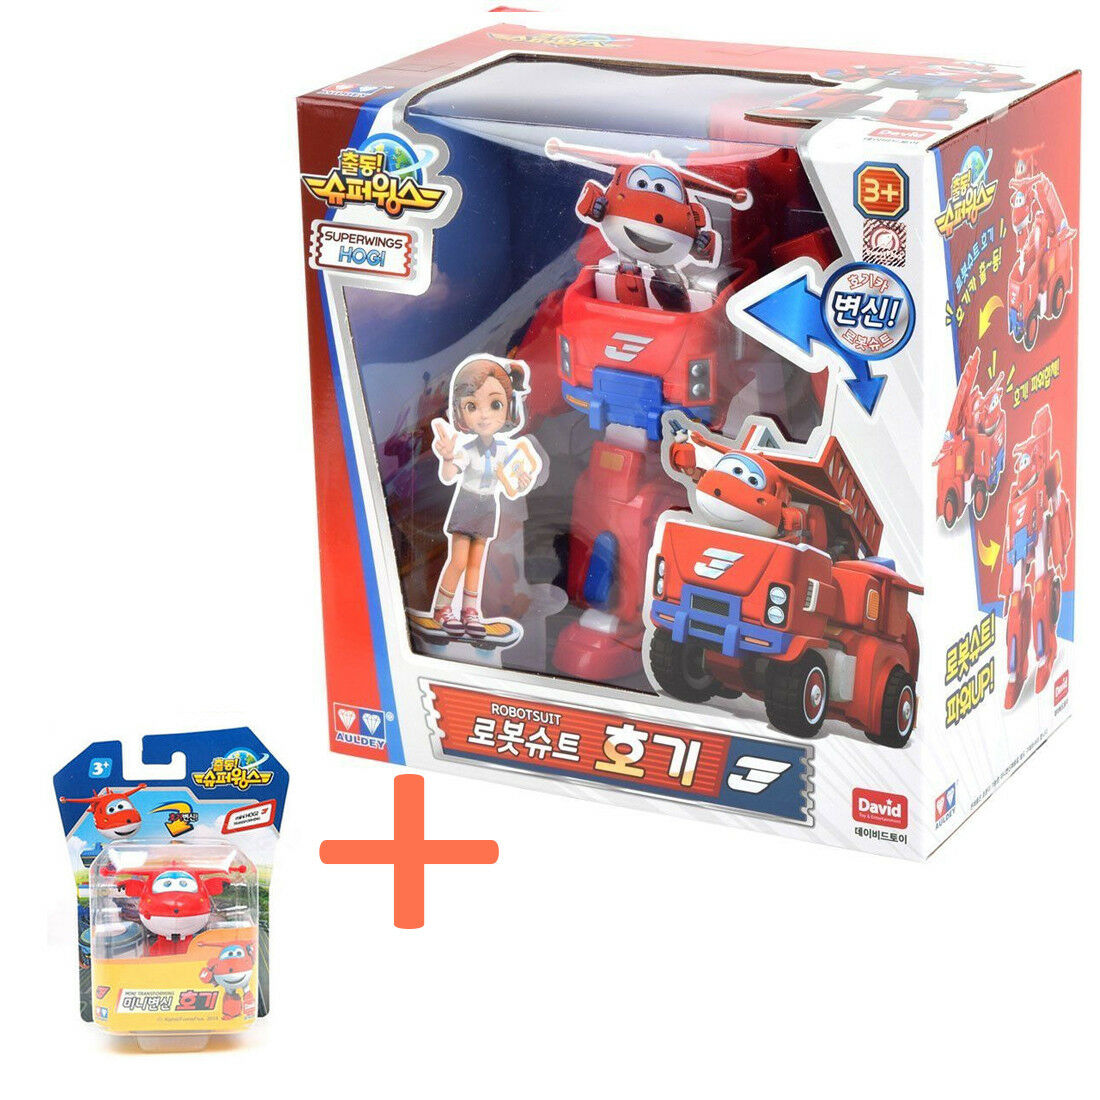 Super Wings Hogi (Jett) Private Car Transforming Robotsuit 7.5